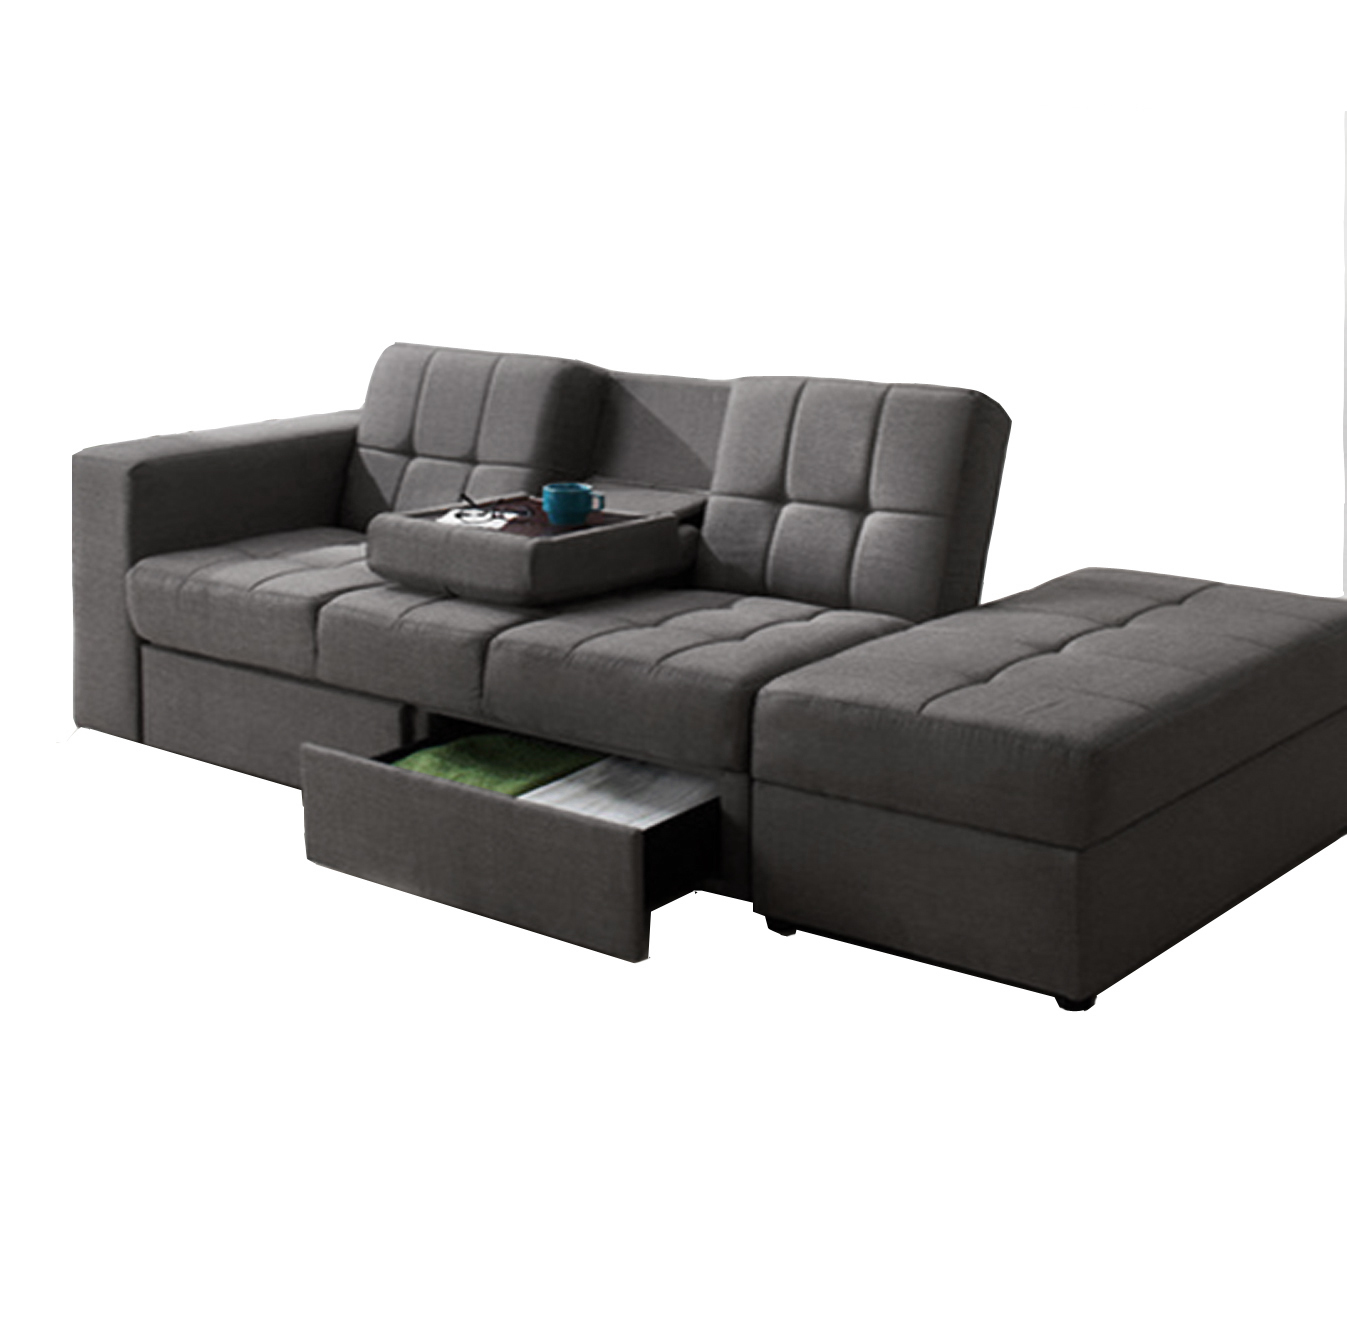 Furniture & Rug: Balkarp Sofa Bed | Sofa Bed Ikea Usa | Ikea Sofa Beds